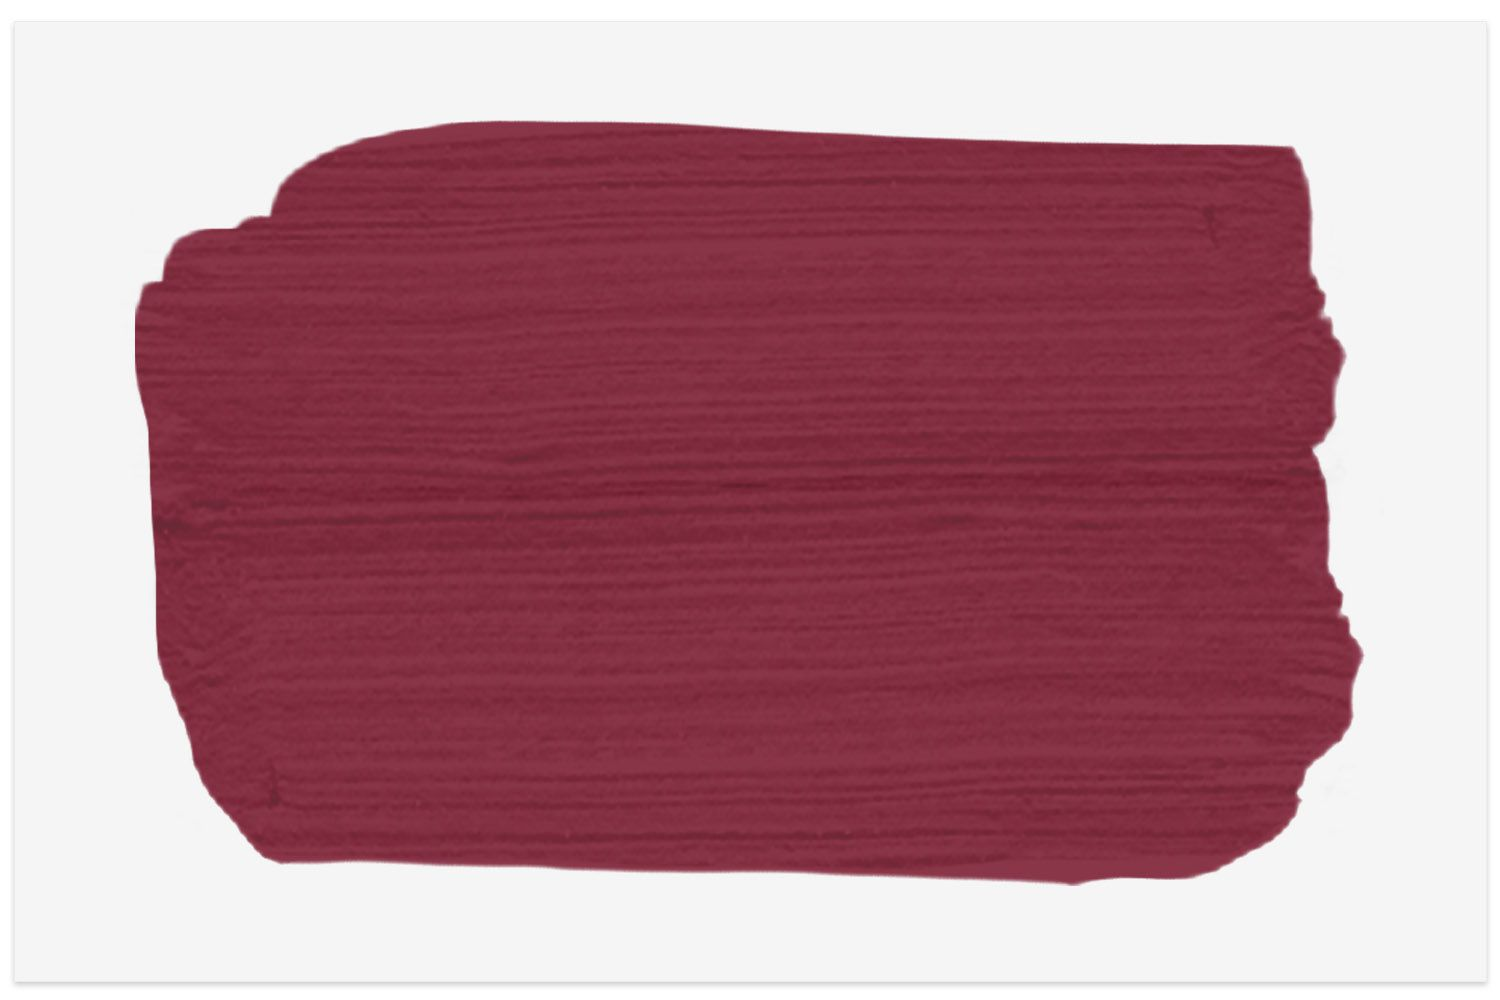 Valspar Sunny Bordeaux paint swatch for wine country-inspired